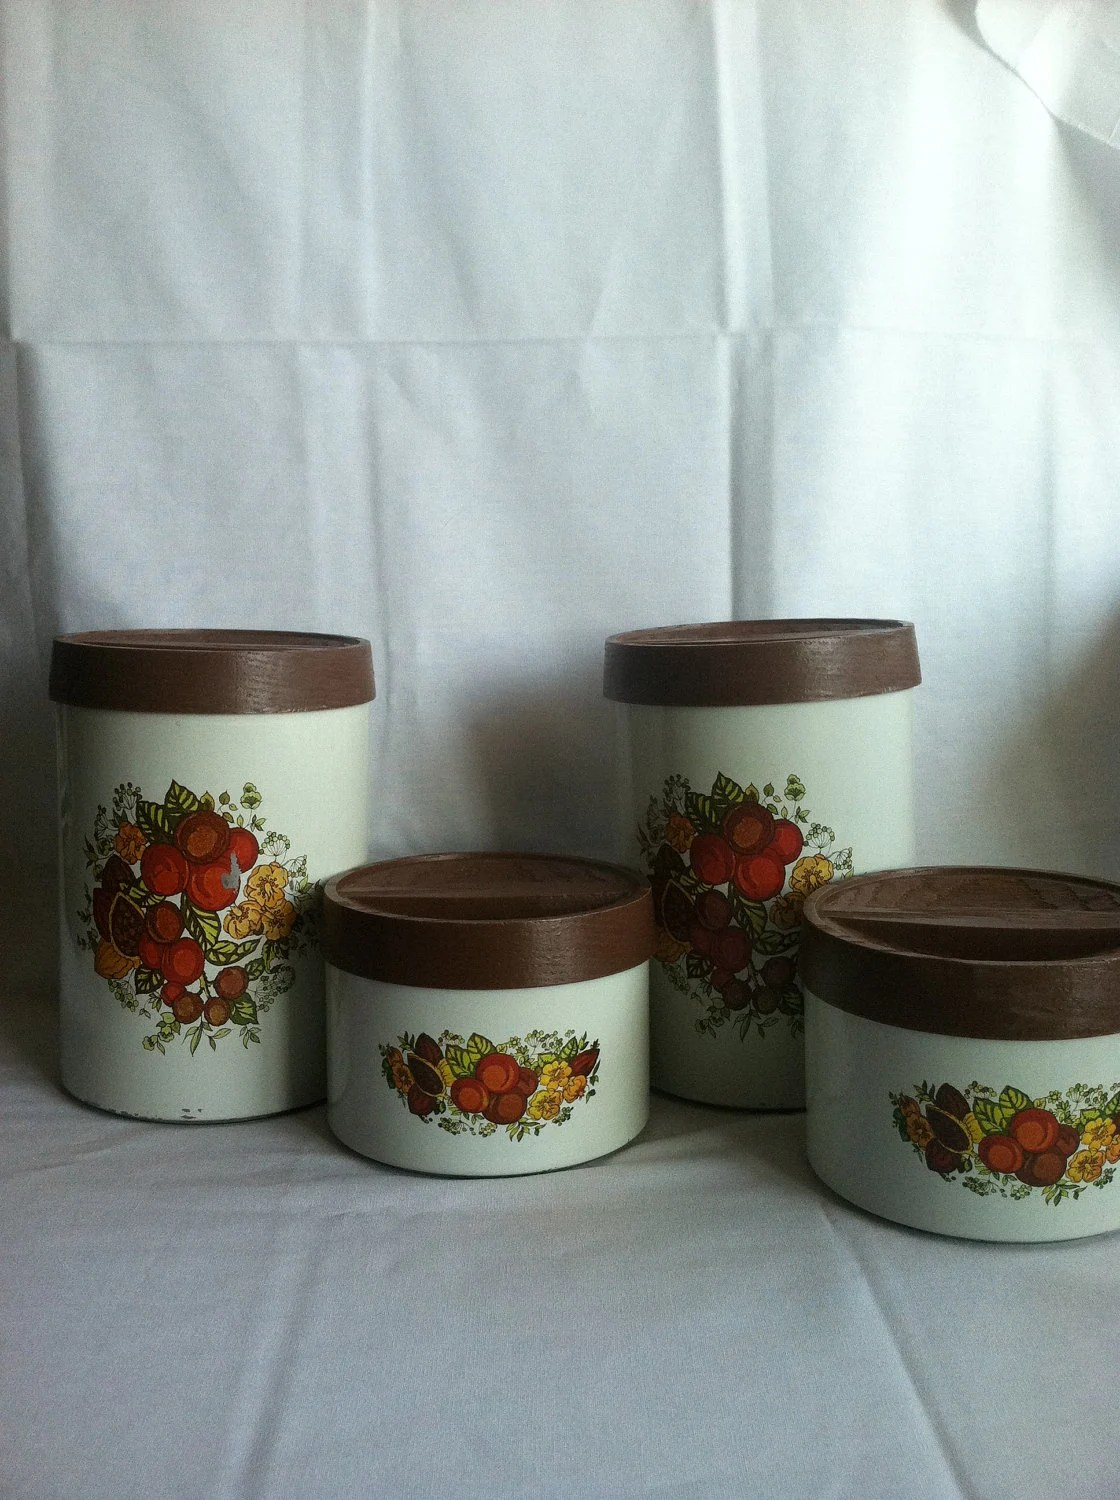 Set of Retro Canisters